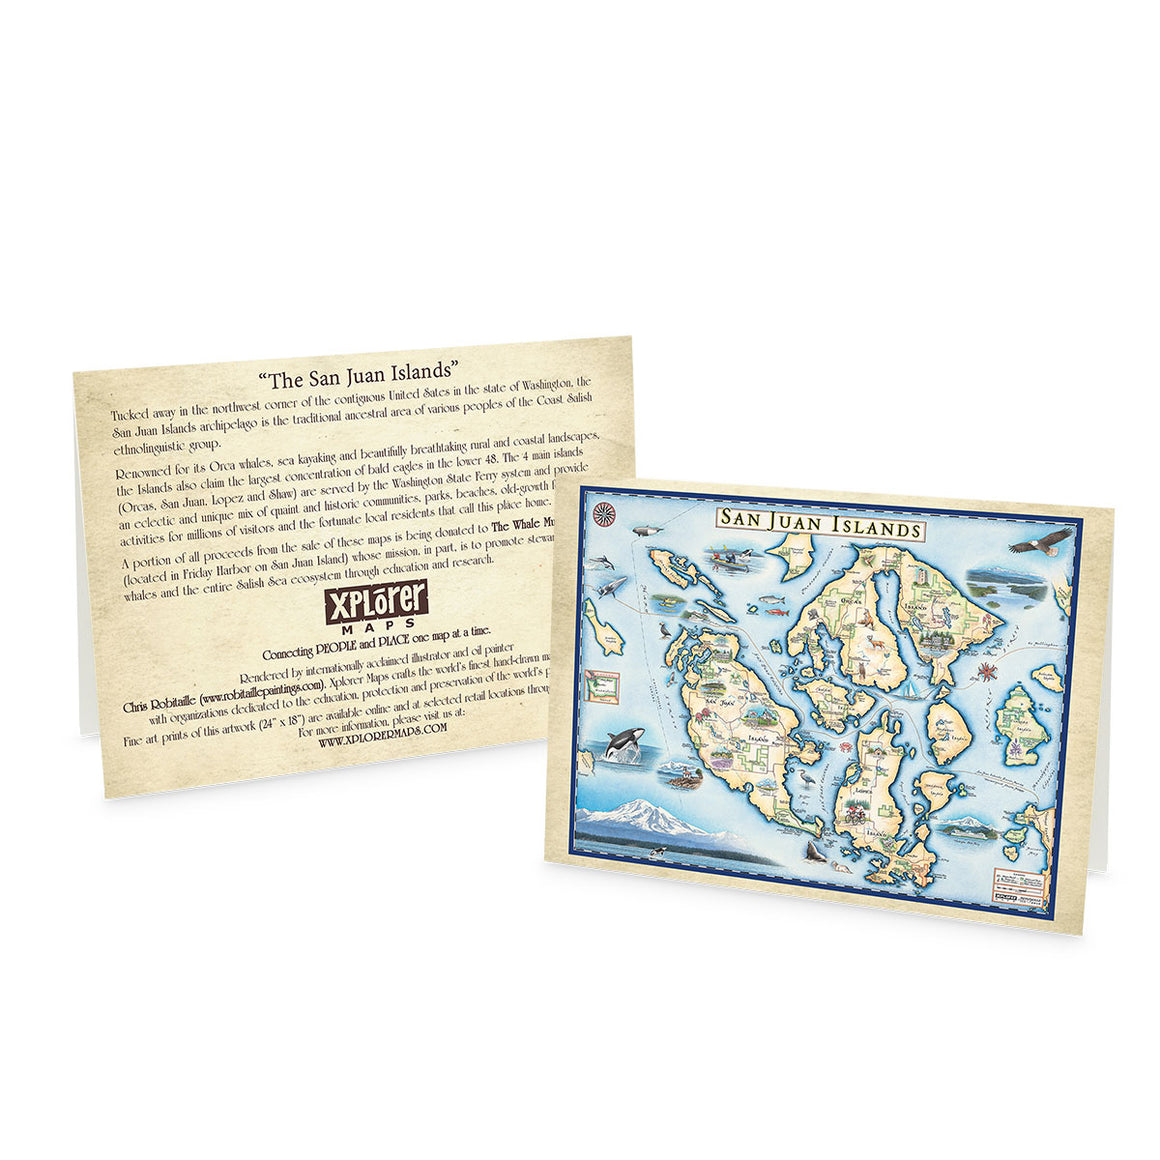 San Juan Islands notecards